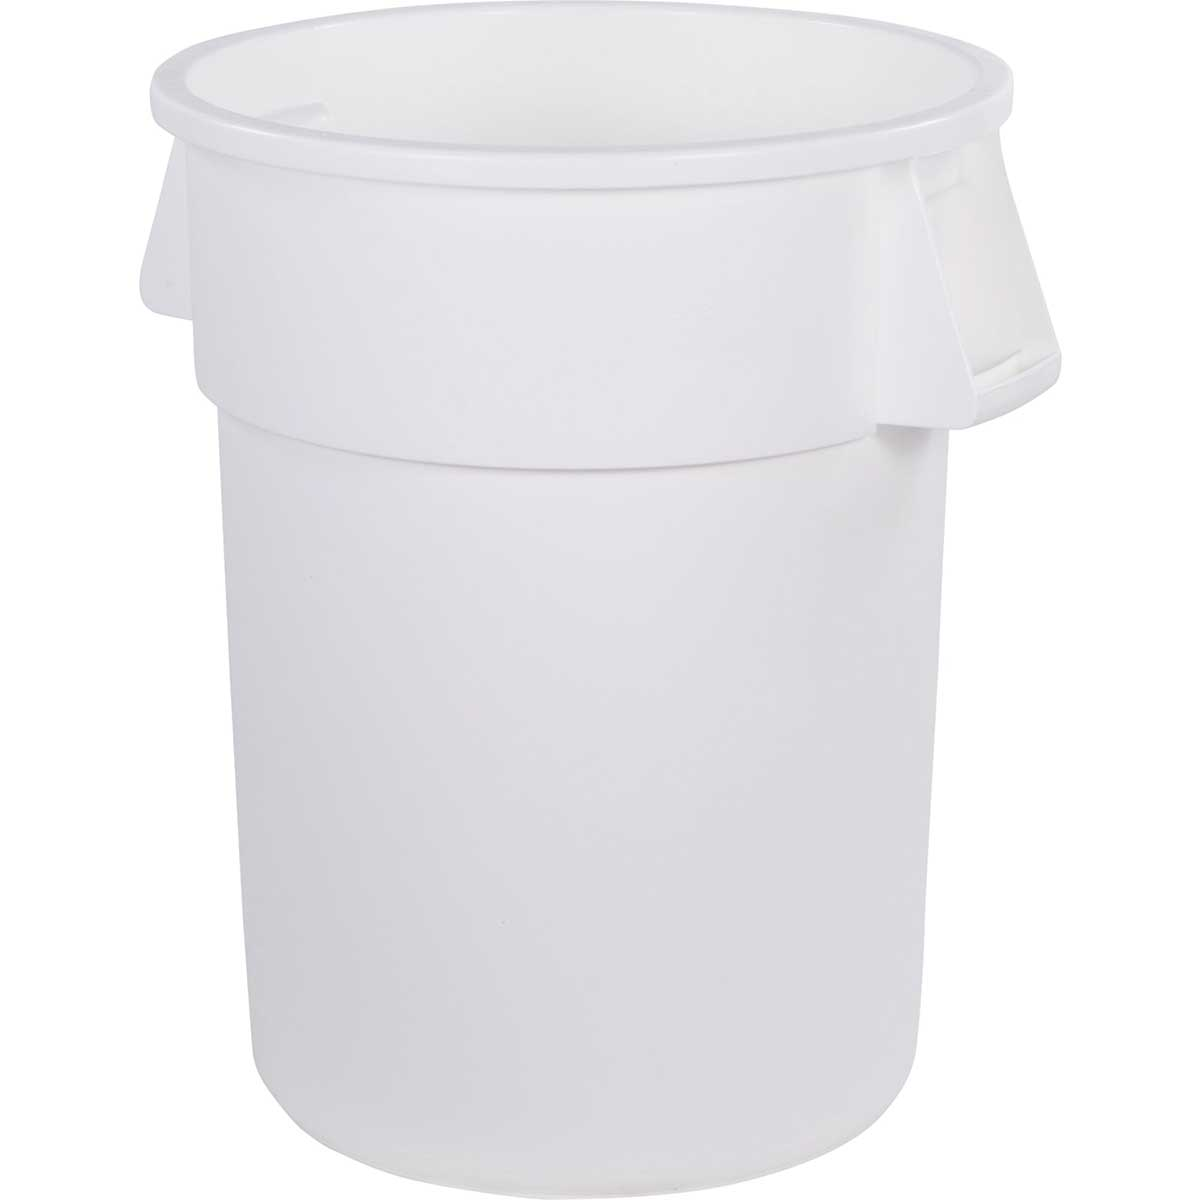 55-Gallon Bronco Round Trash Can, Pack of 2